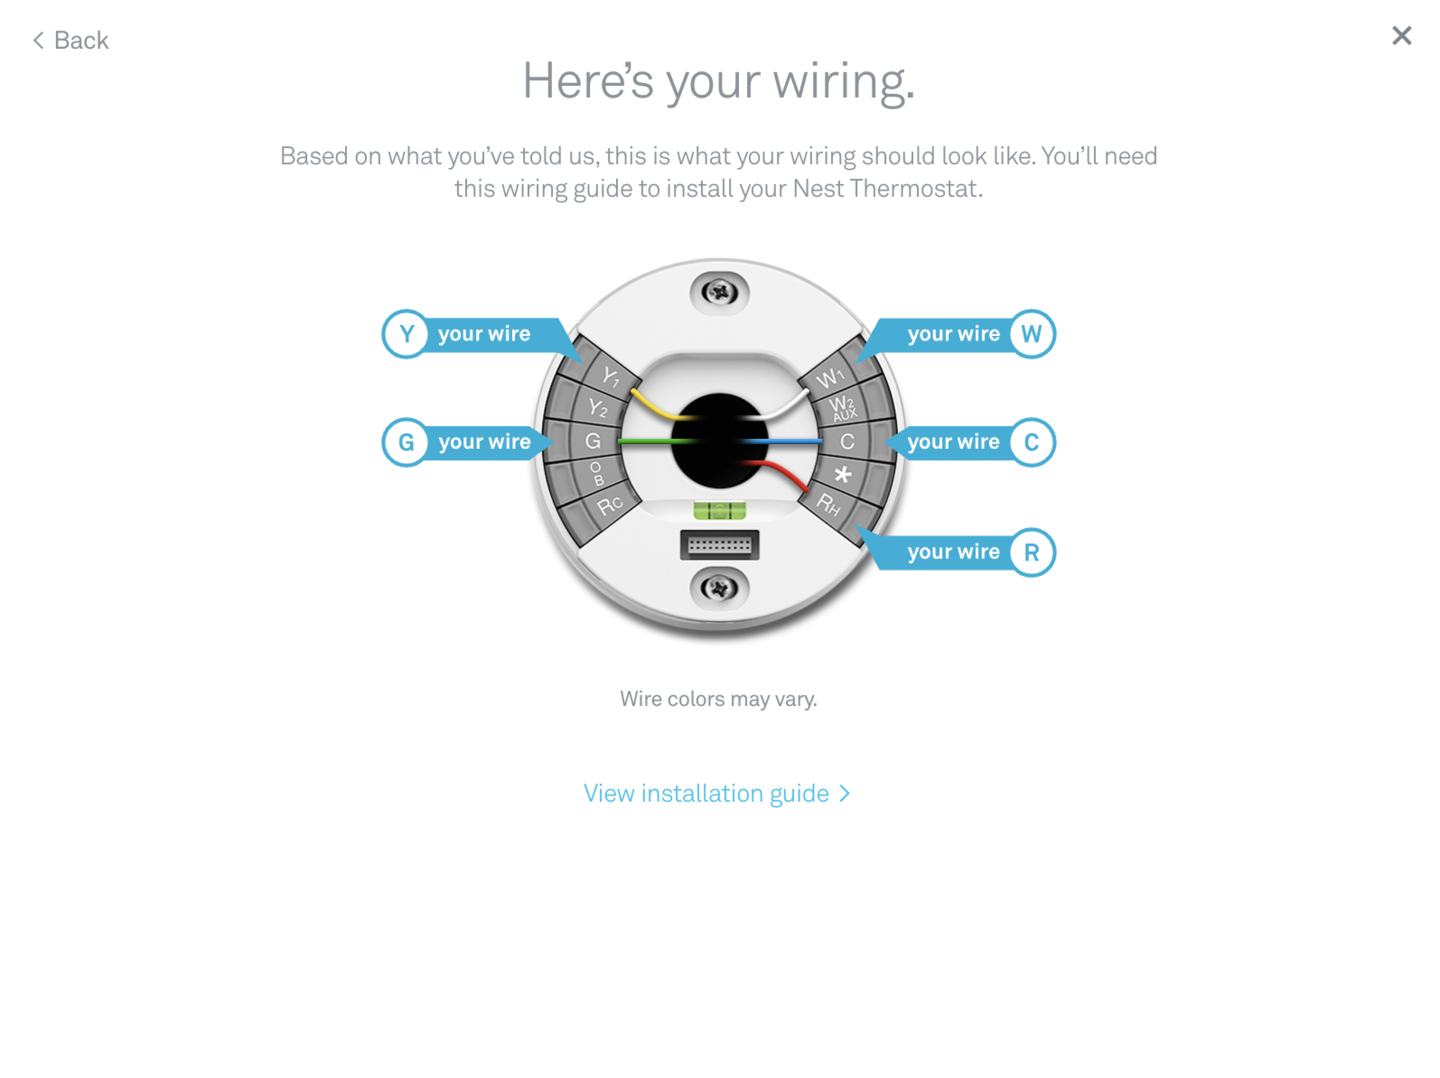 How To Install Your Nest Thermostat - Howchoo - Check Your Nest Thermostat Wiring Diagram